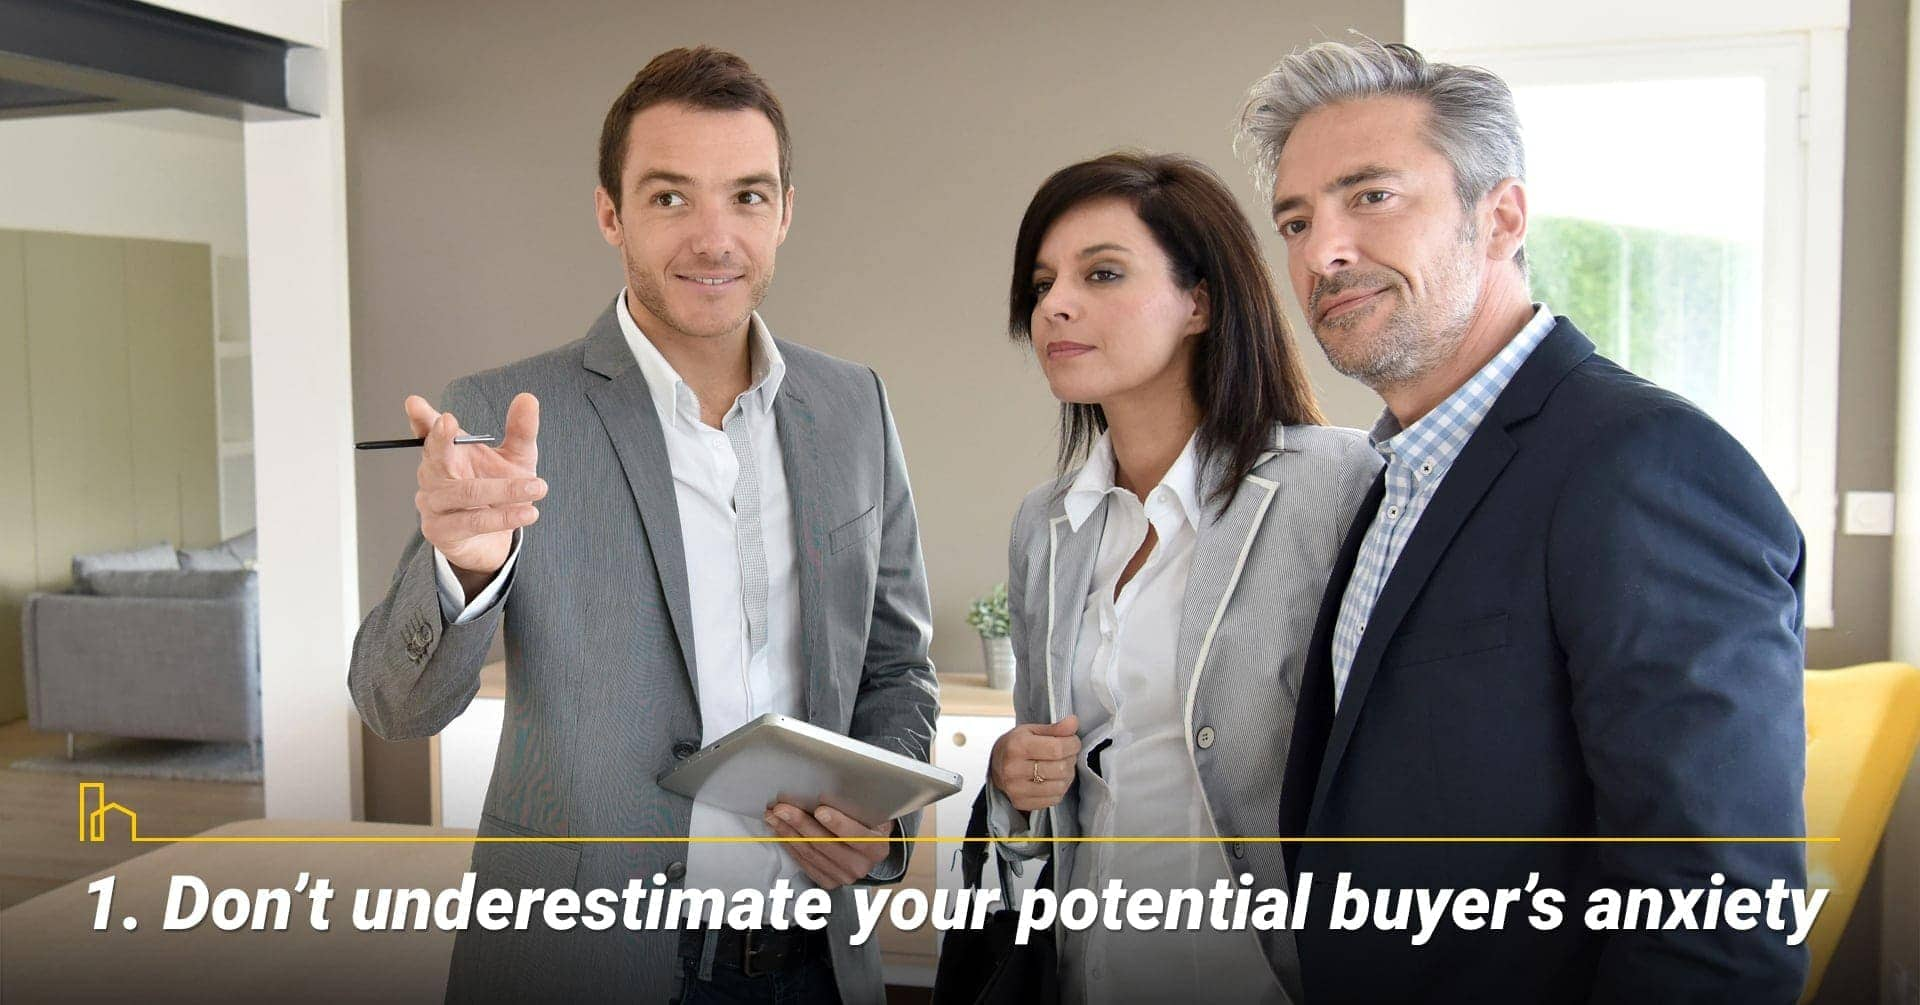 Don't underestimate your potential buyer's anxiety